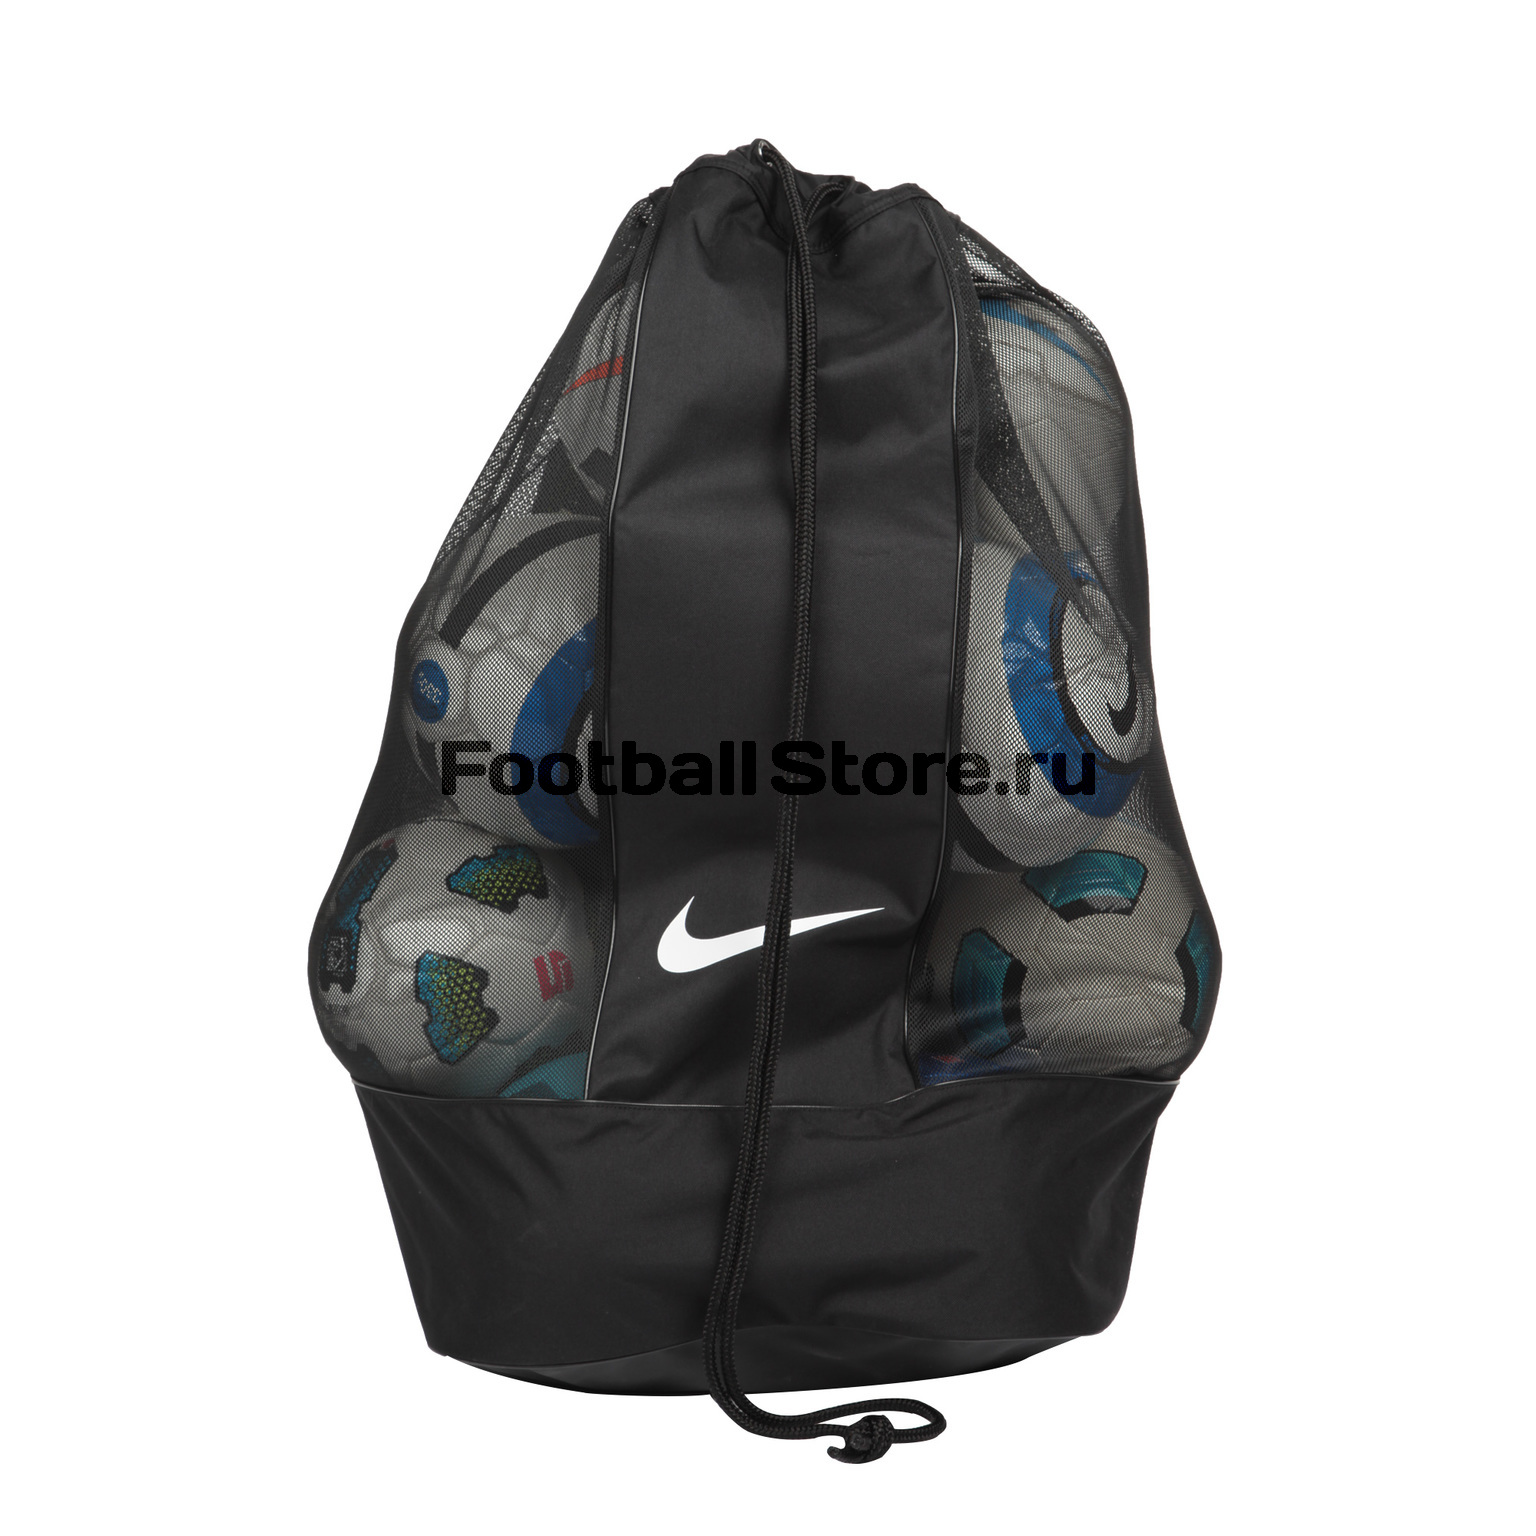 Сумка для мячей Nike Club Team Swoosh BA5200-010 сумка для обуви nike utility modular tote cq9470 010